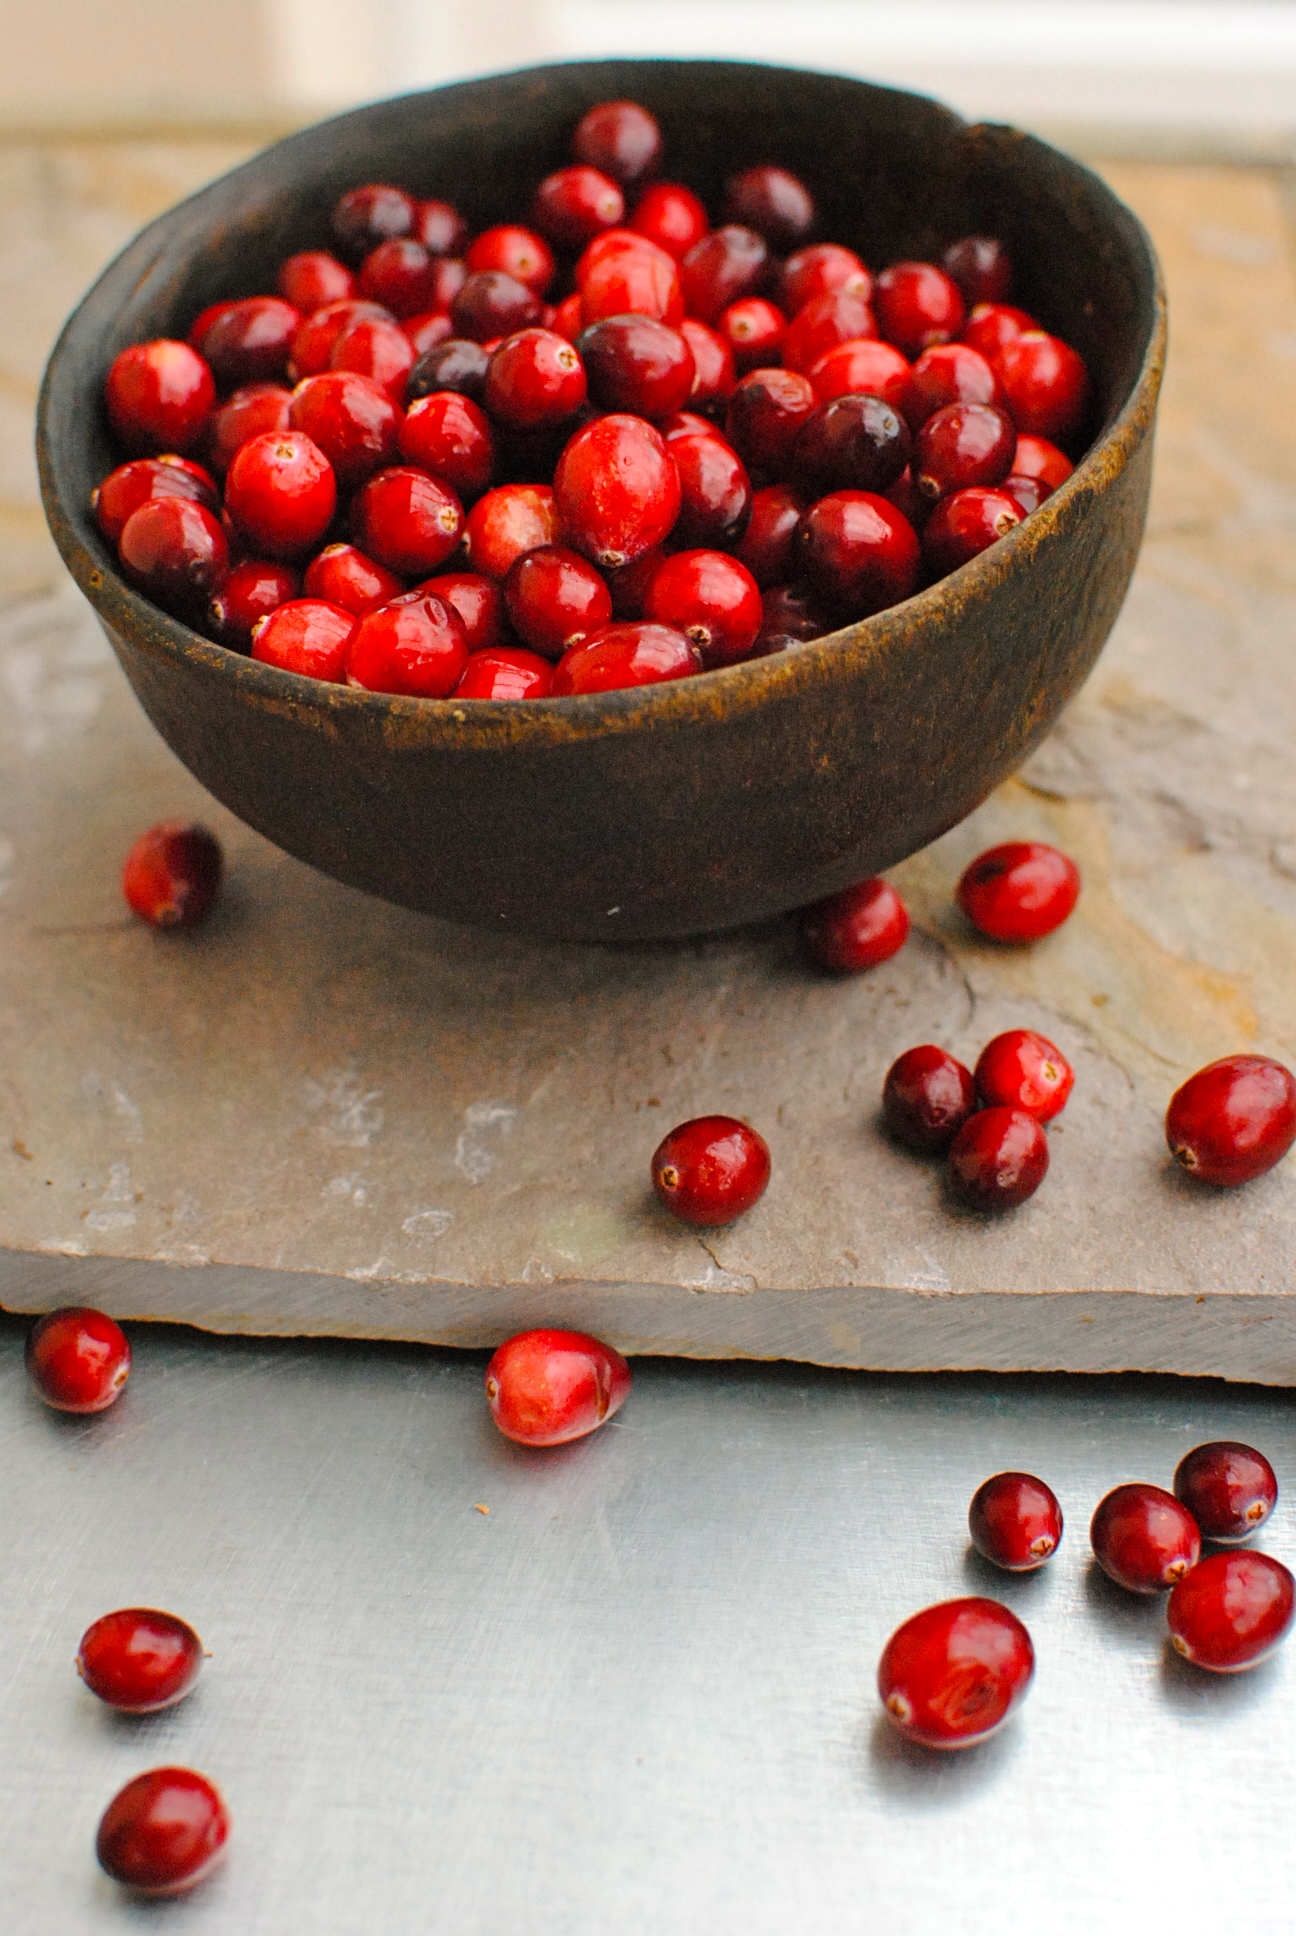 ... Cranberry and Apple Sauce and Cranberry-Pomegranate Relish | food to